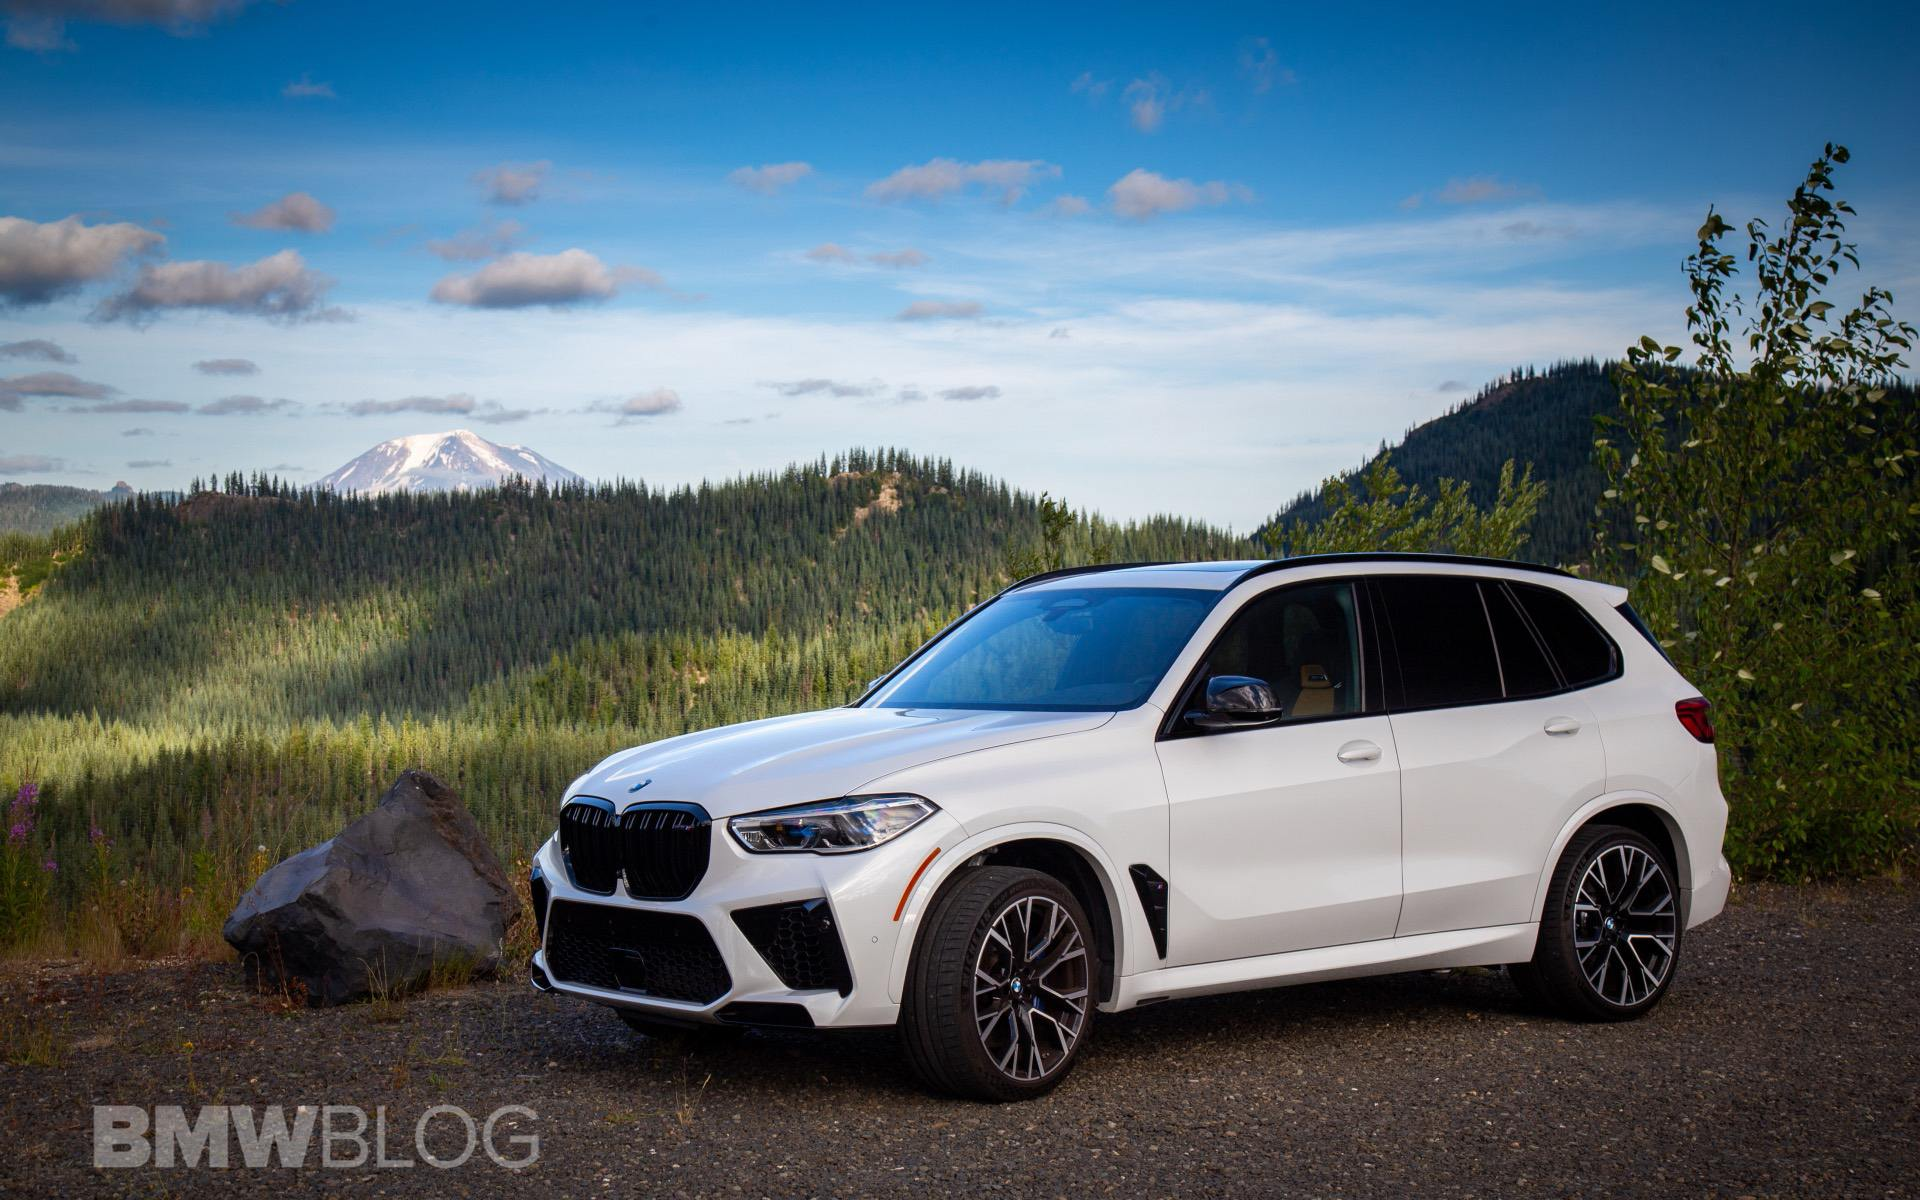 2021 bmw x5 m competition road trip 06